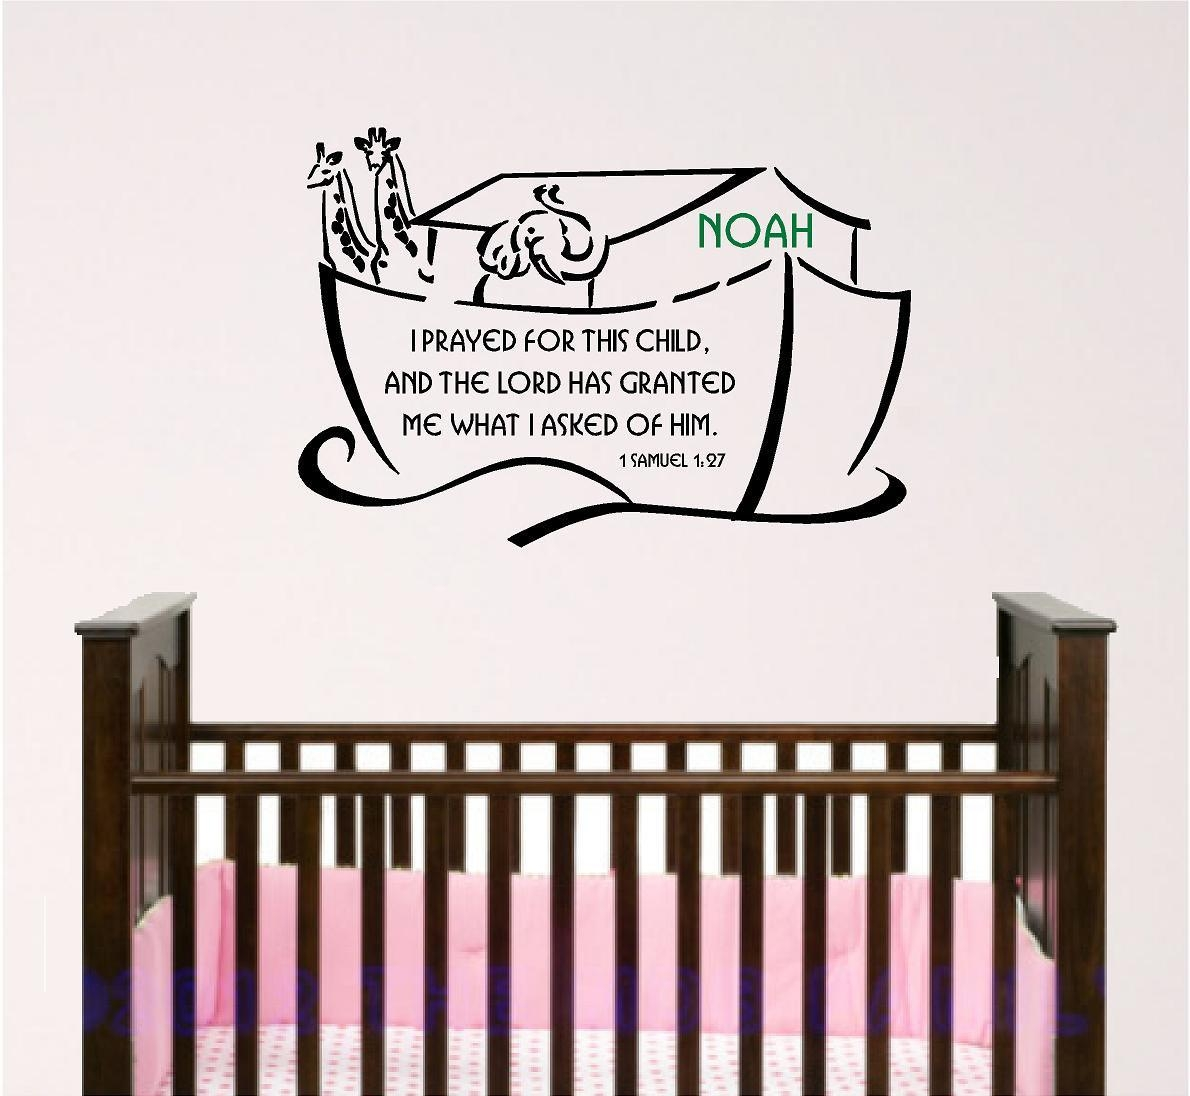 Scripture Wall Decal Noahs Ark Nursery Bible Verse Wall Art Pertaining To For This Child I Prayed Wall Art (Image 20 of 20)